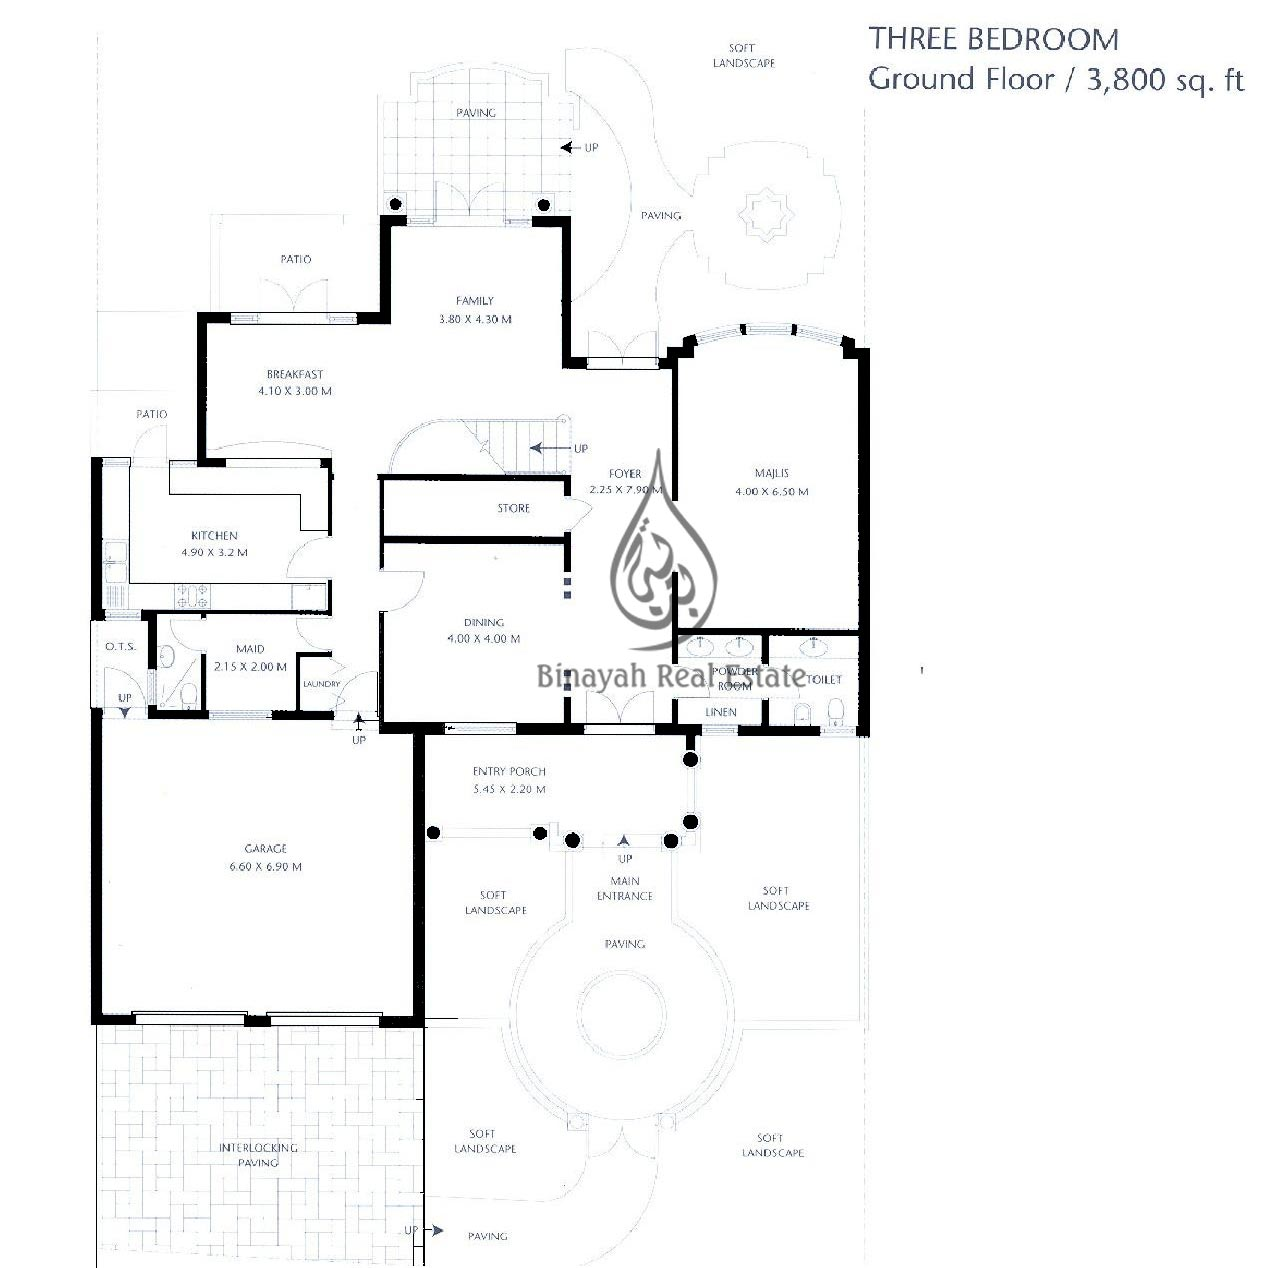 Garden homes palm jumeirah floor plan house design plans Ground floor 3 bedroom plans